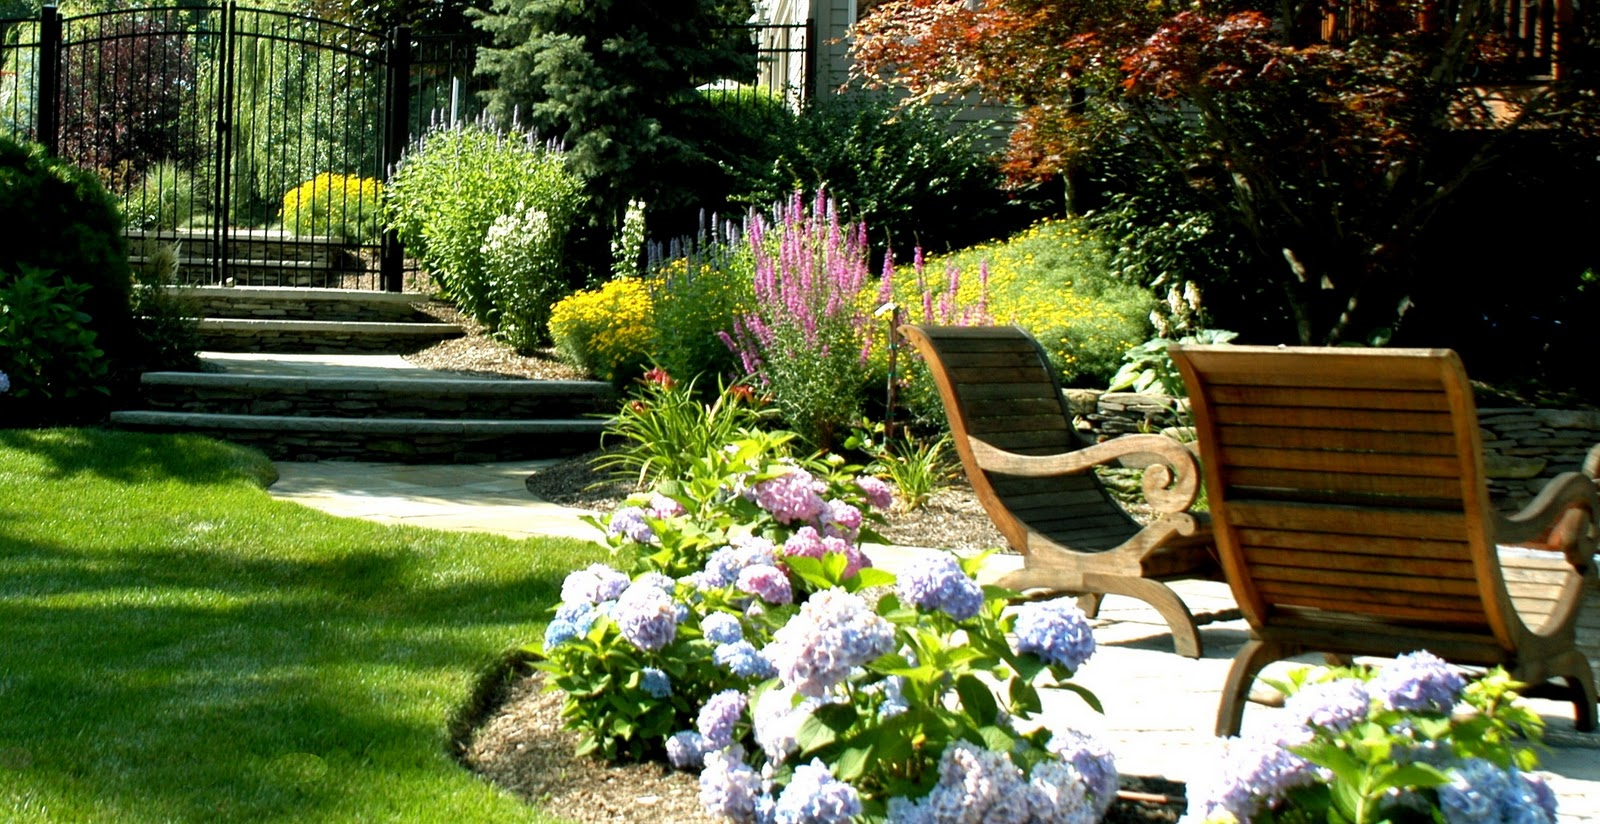 Hightechlandscapes new jersey landscape design for Designer landscapes